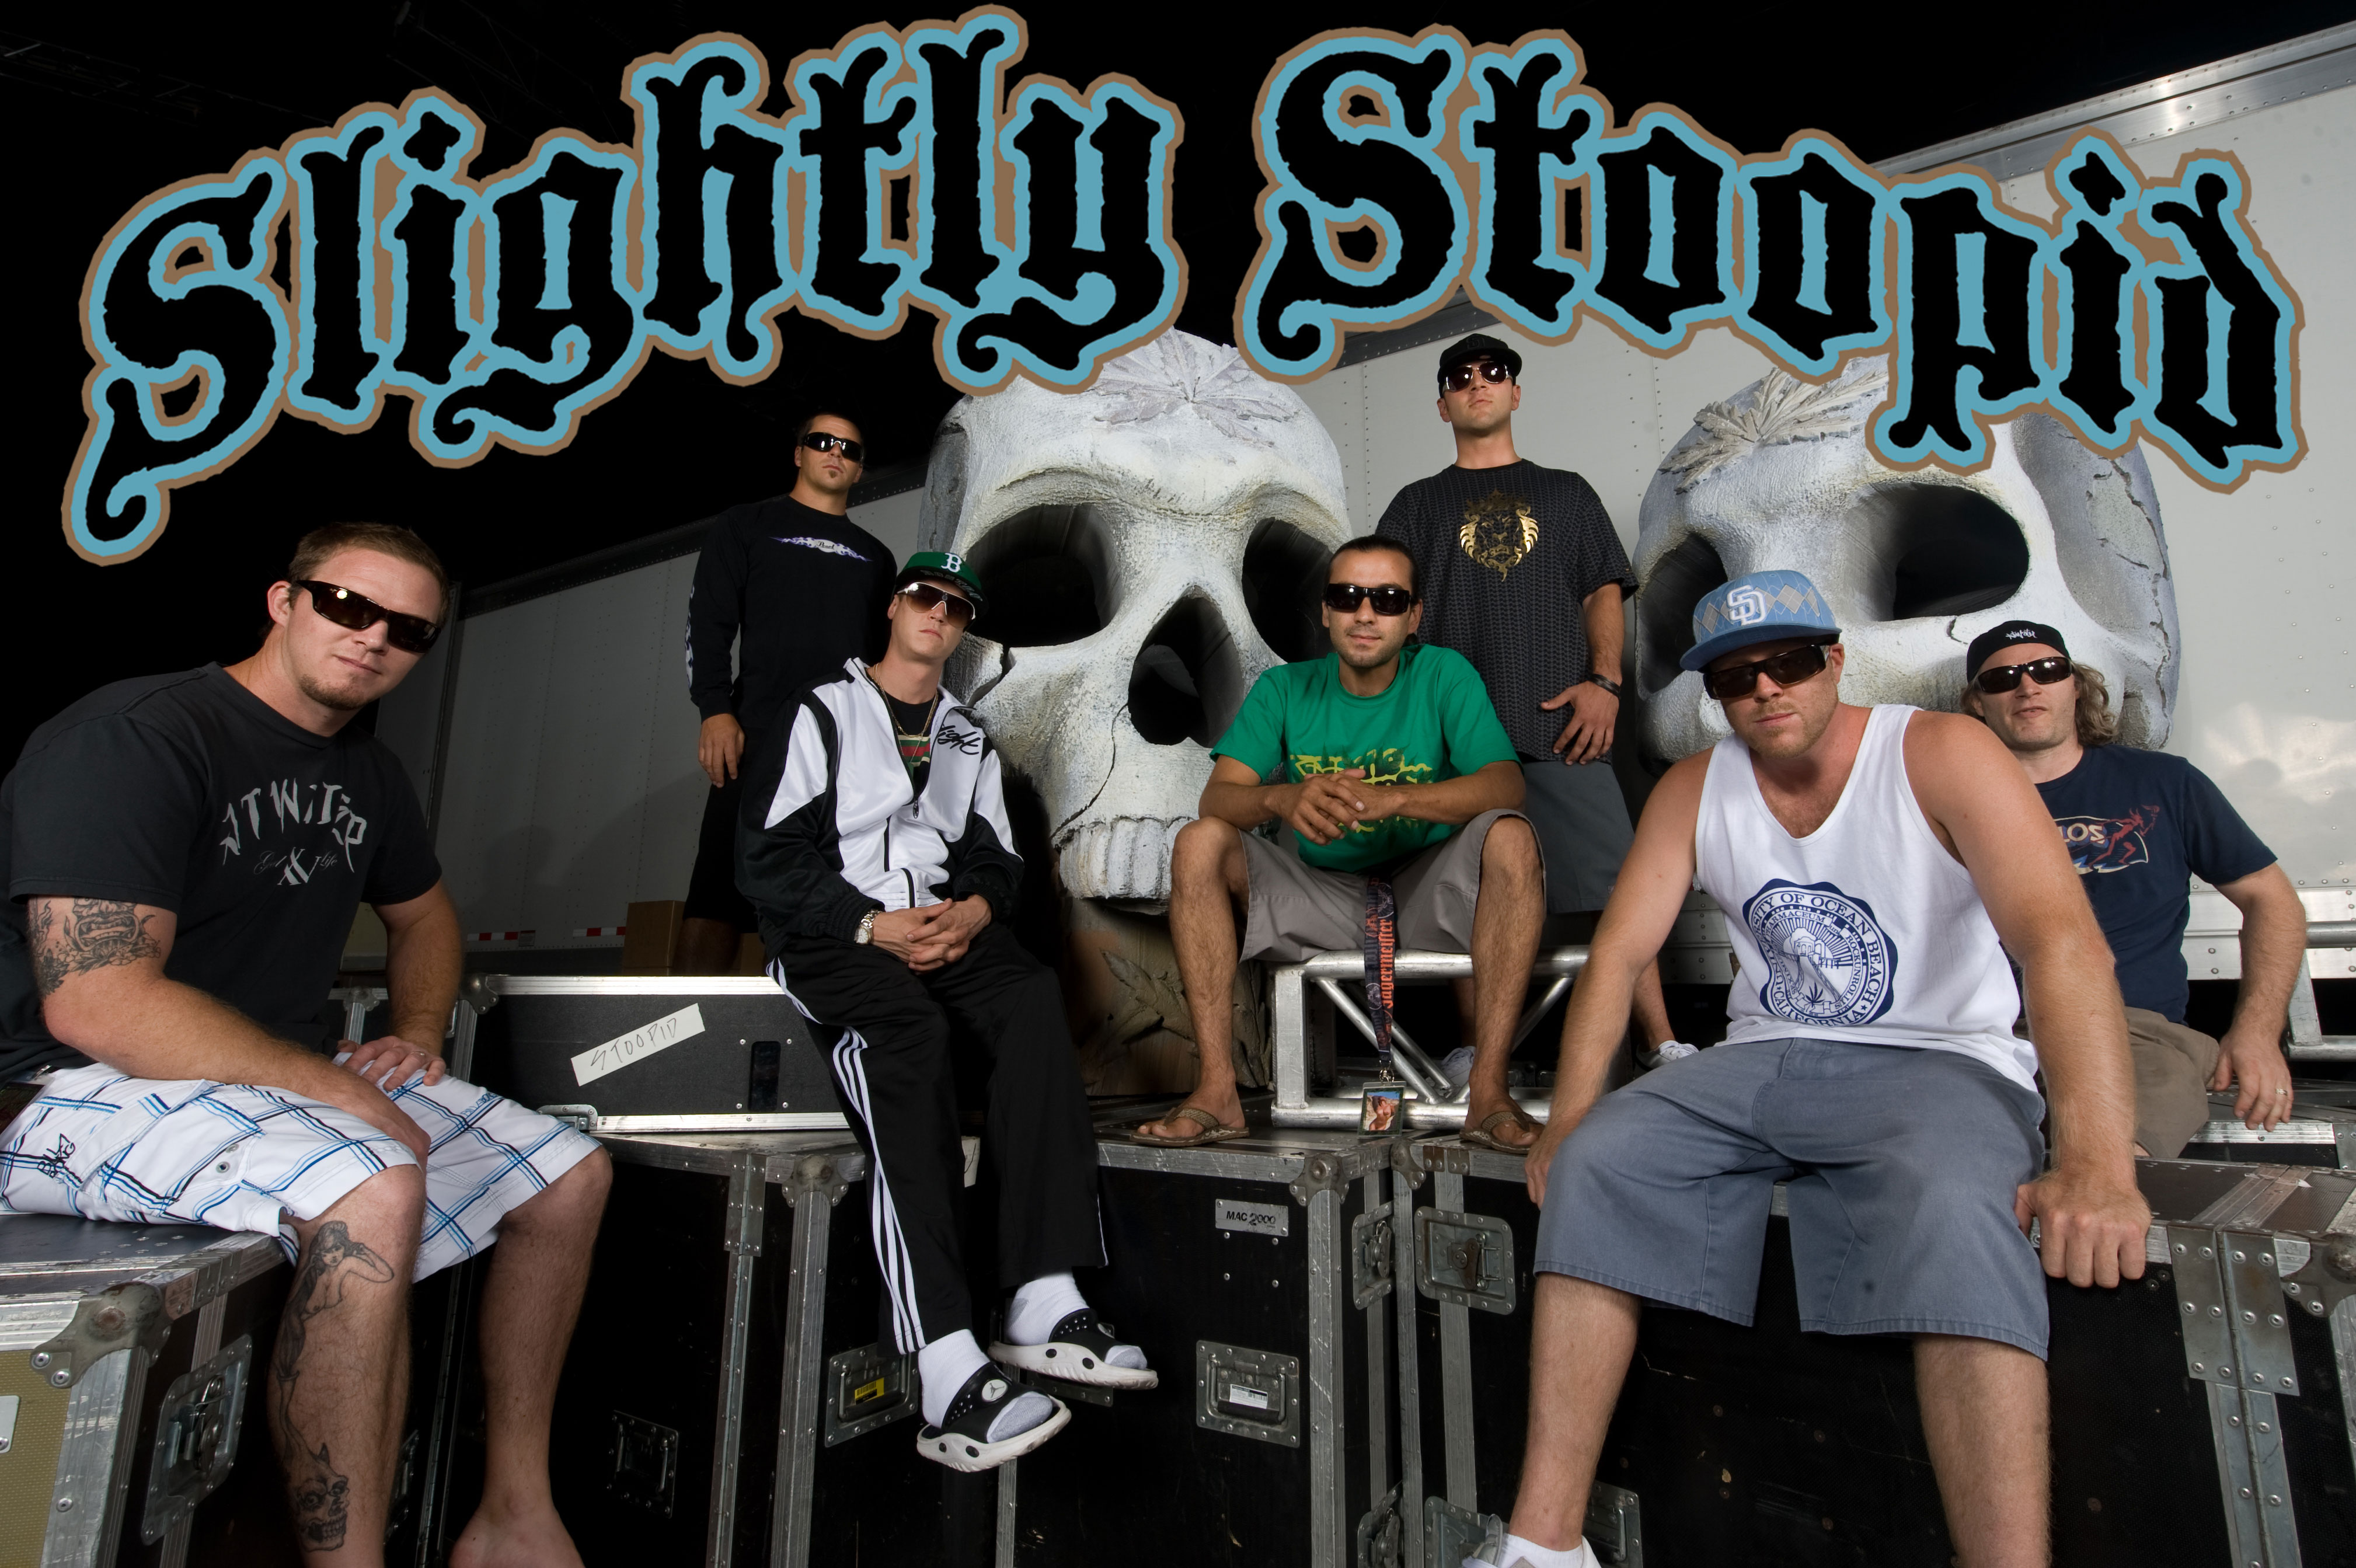 A Concert Review Sitting Down With Slightly Stoopid